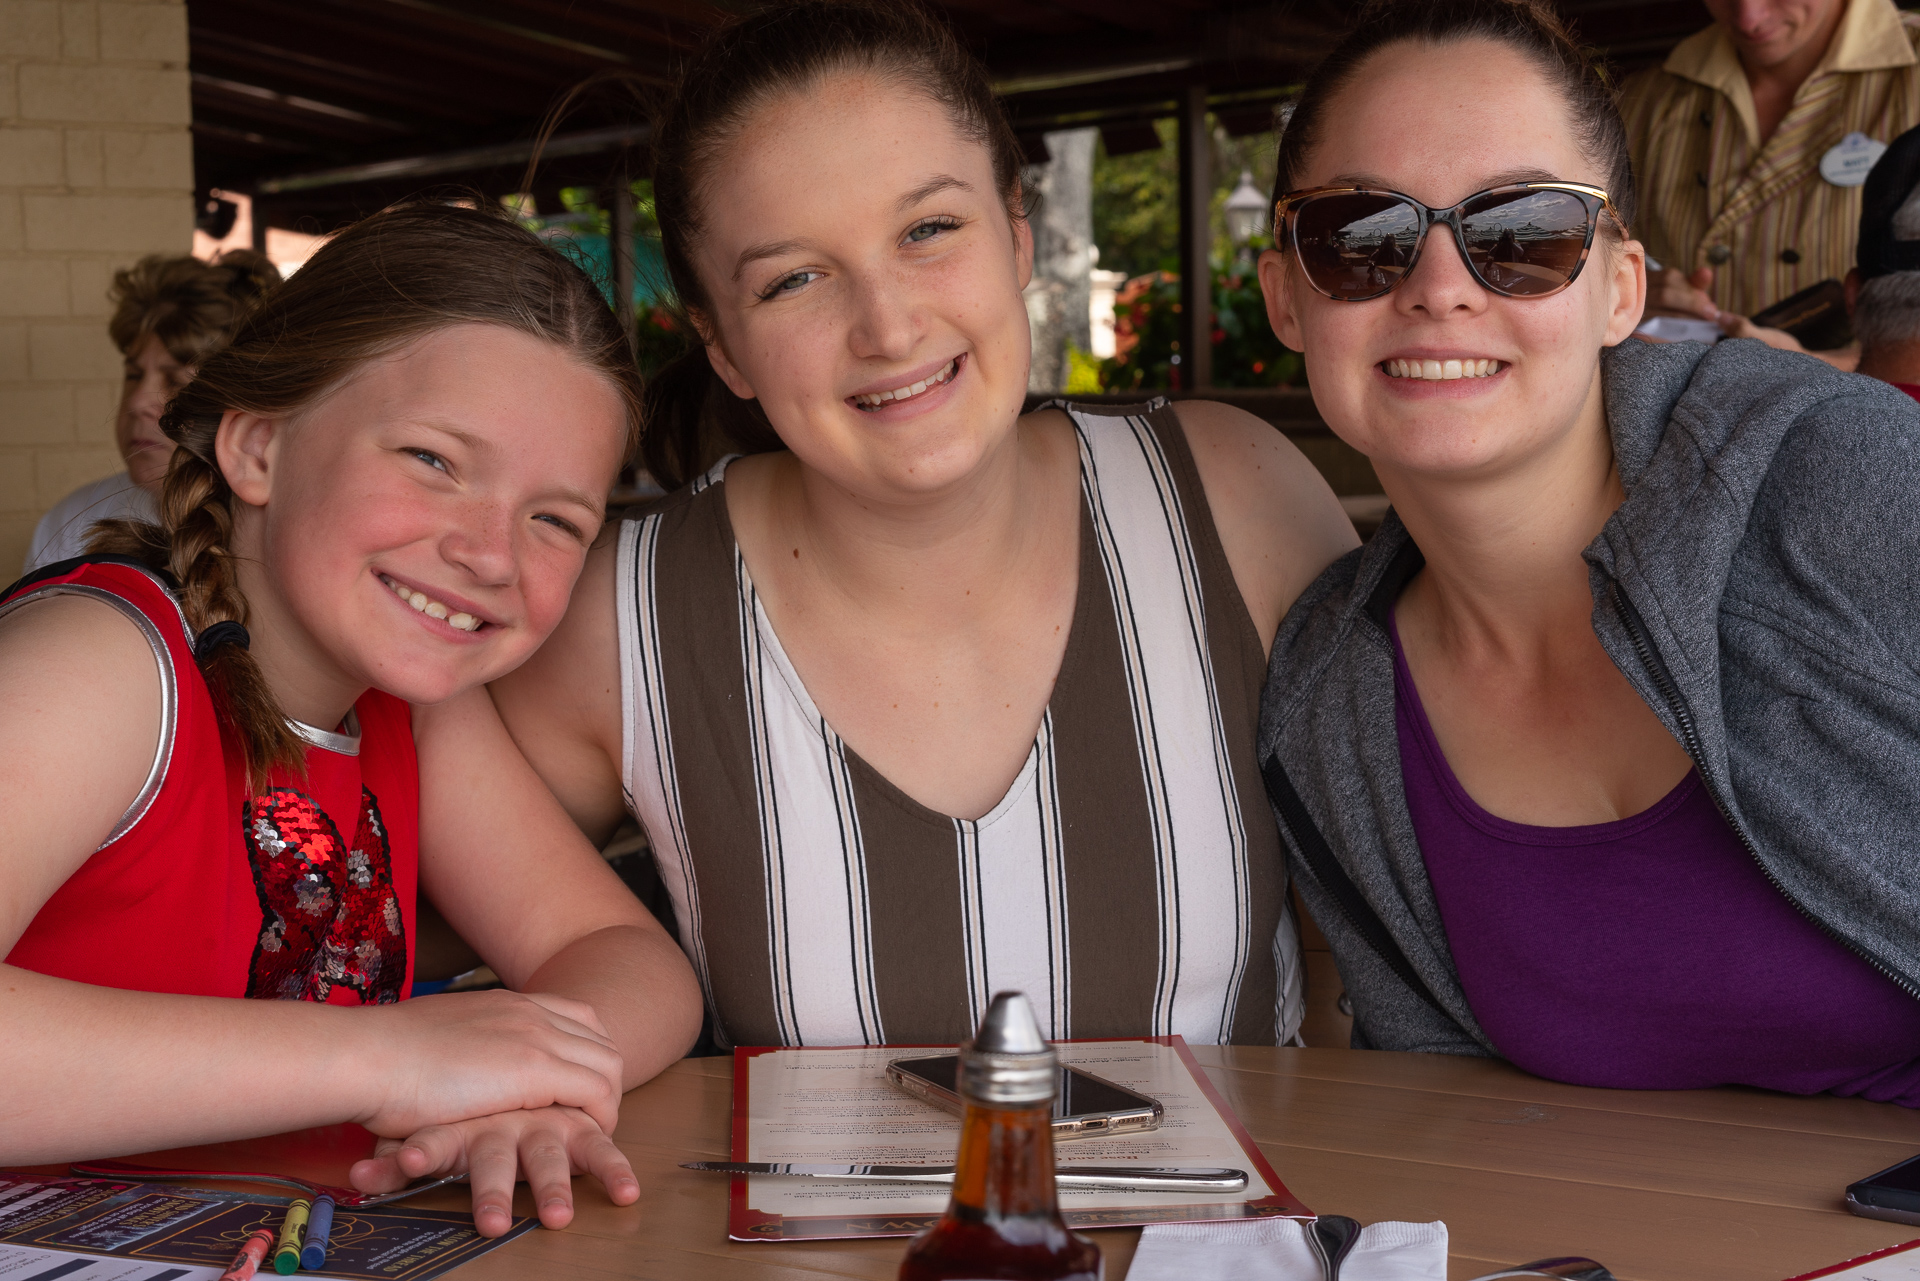 Three girls at the Rose and Crown in Epcot at Walt Disney World